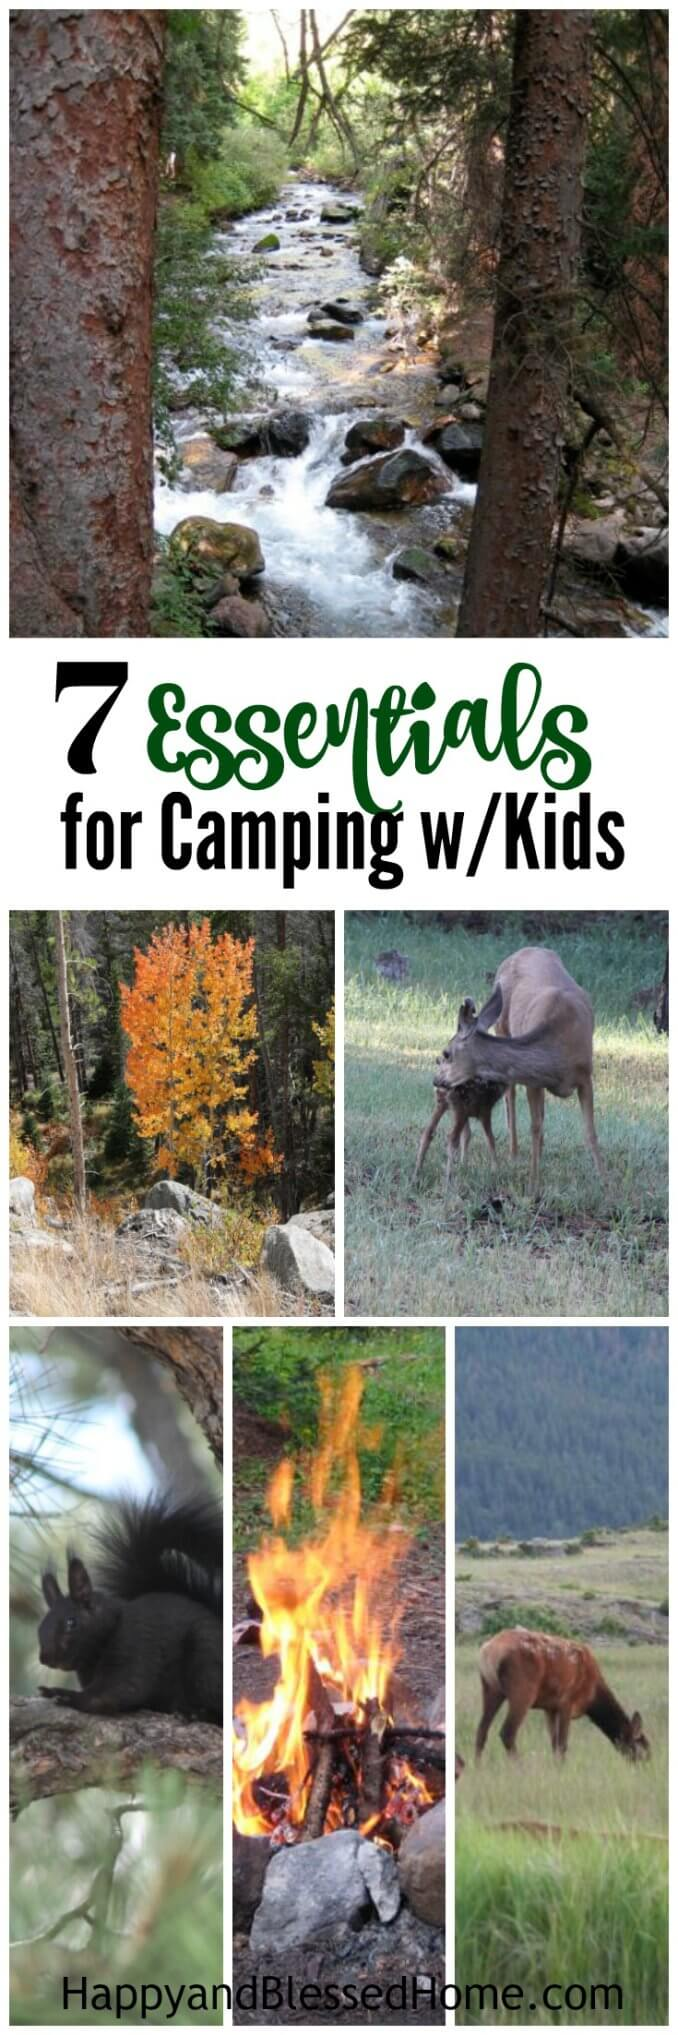 7 Essentials for Camping with Kids